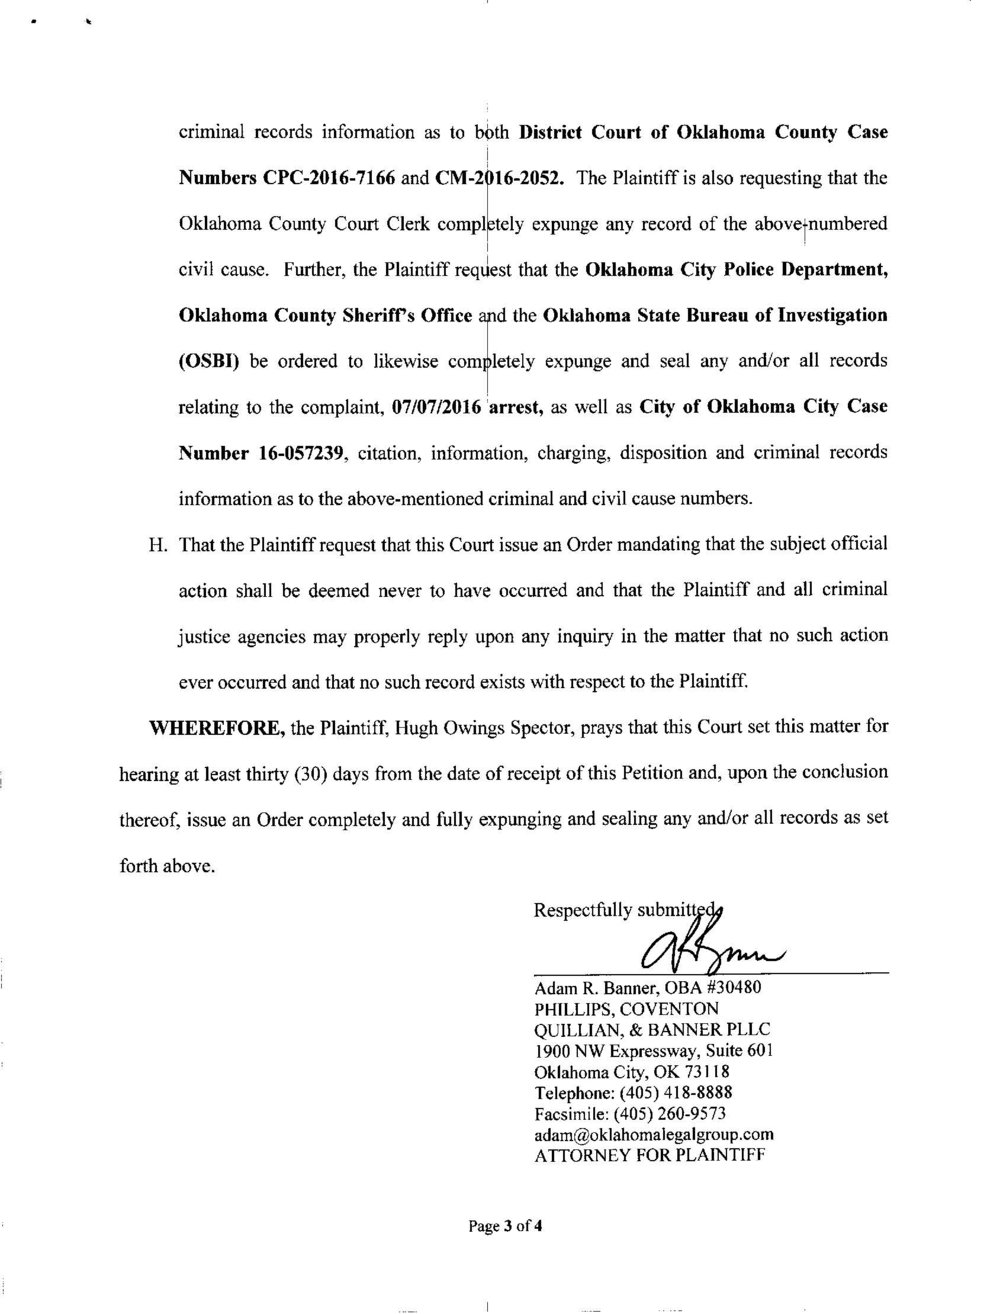 Hugh Spector Expungement Request_Page_3.jpg